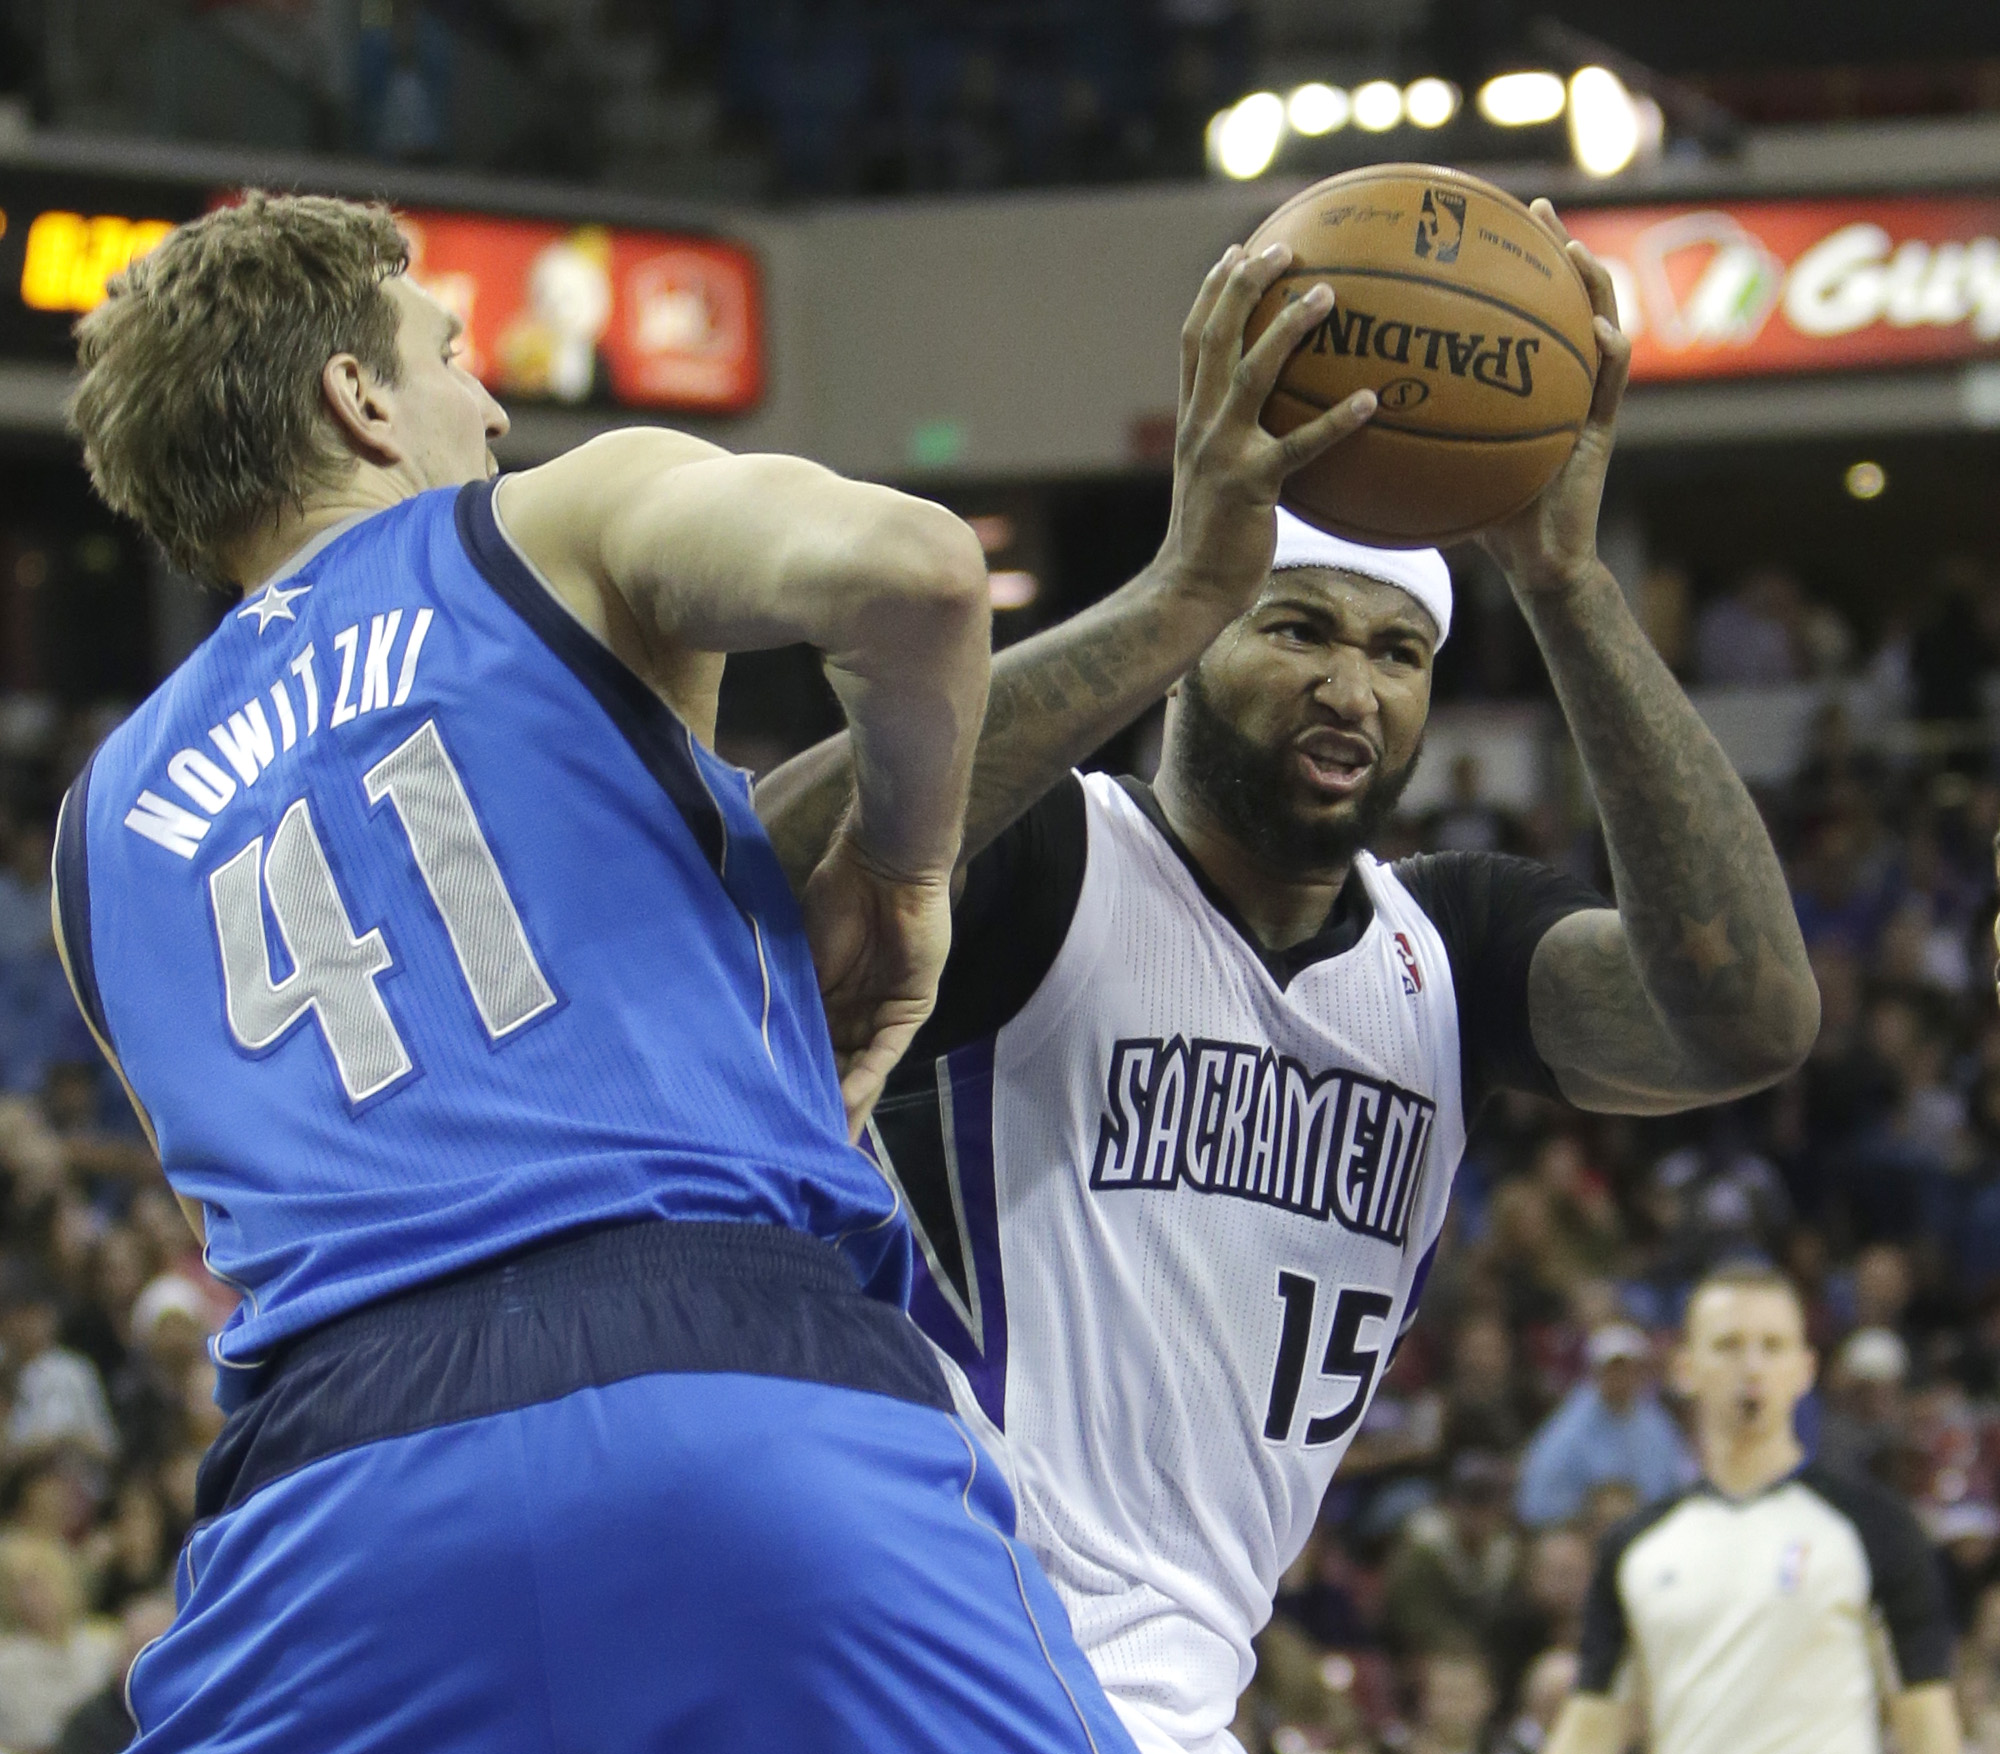 Sacramento Kings center DeMarcus Cousins, right, goes to the basket against Dallas Mavericks forward Dirk Nowitzki, of Germany, during the third quarter of an NBA basketball game in Sacramento, Calif., Monday, Dec. 9, 2013.  The Kings won 112-97